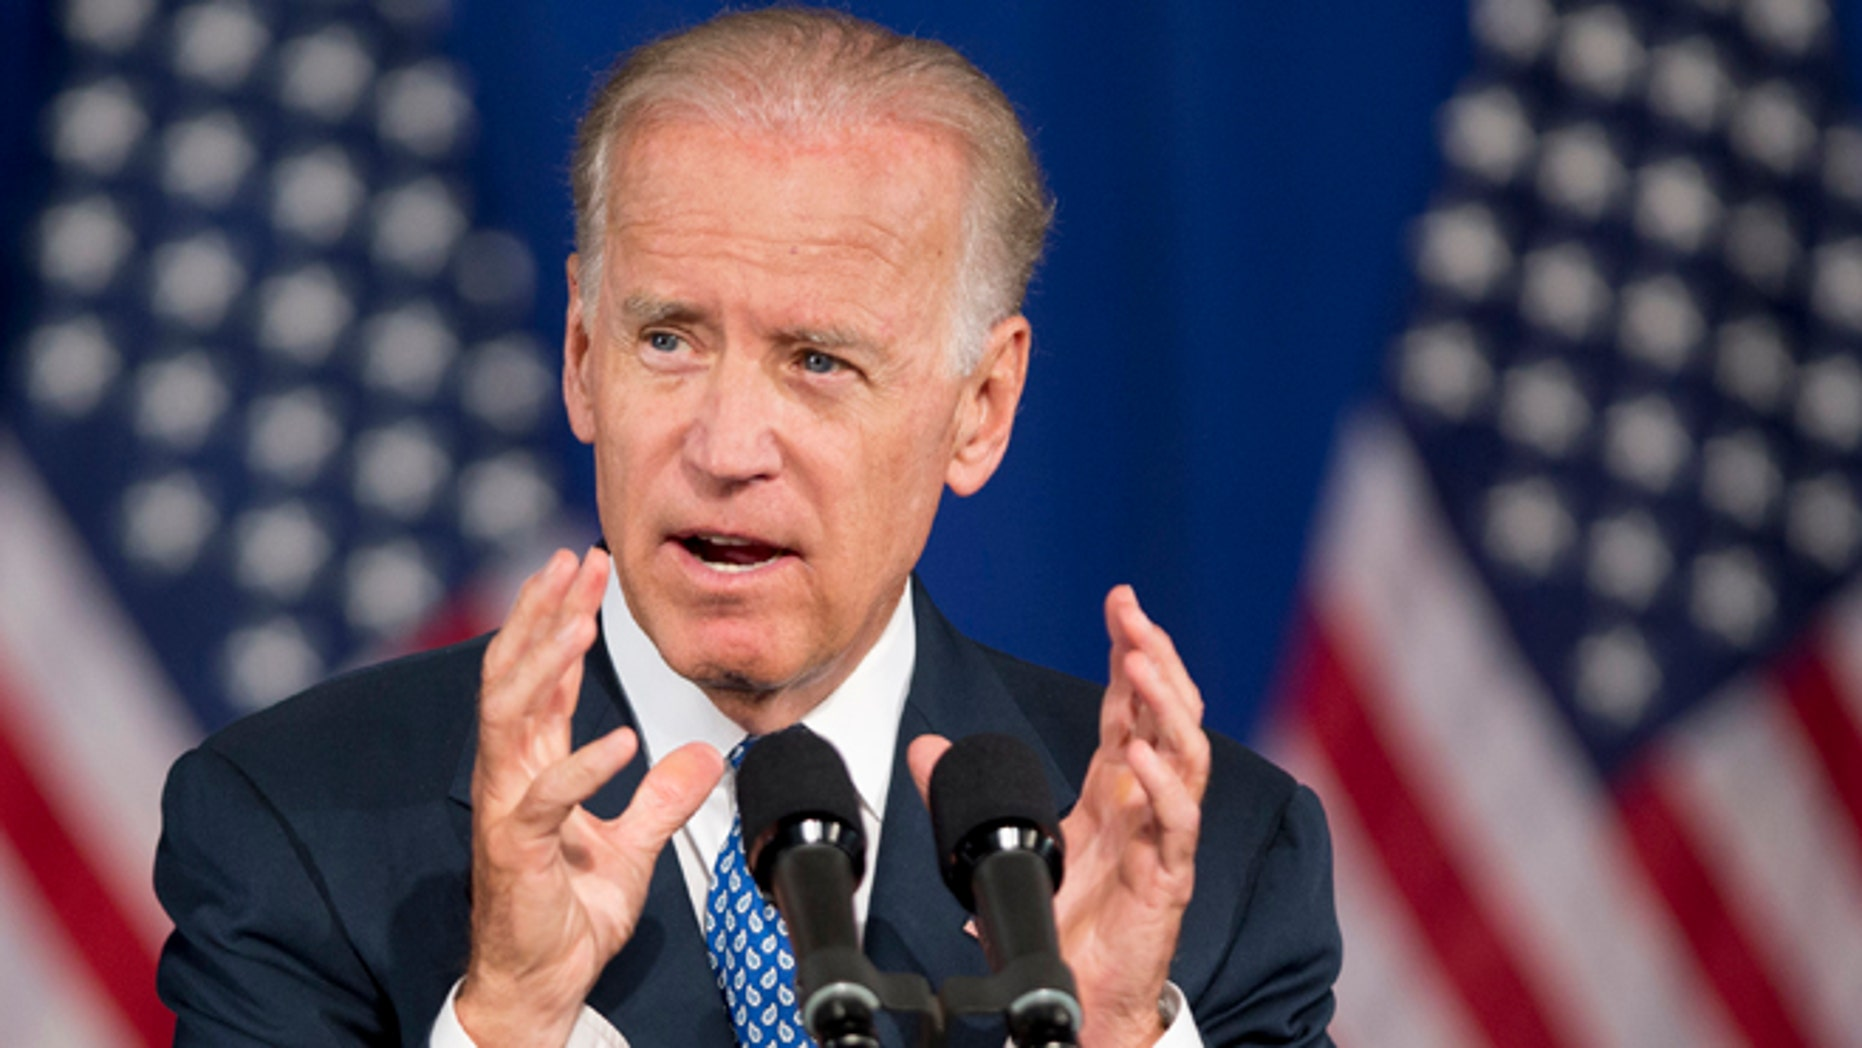 FILE - In this July 18, 2013 file photo, Vice President Joe Biden speaks in Washington. Biden plans to raise campaign cash for the Democratic leader of the first-in-the-nation primary state. The White House says Biden will appear at an Aug. 22 fundraiser for New Hampshire Gov. Maggie Hassan, who faces re-election next year.  (AP Photo/Manuel Balce Ceneta, File)